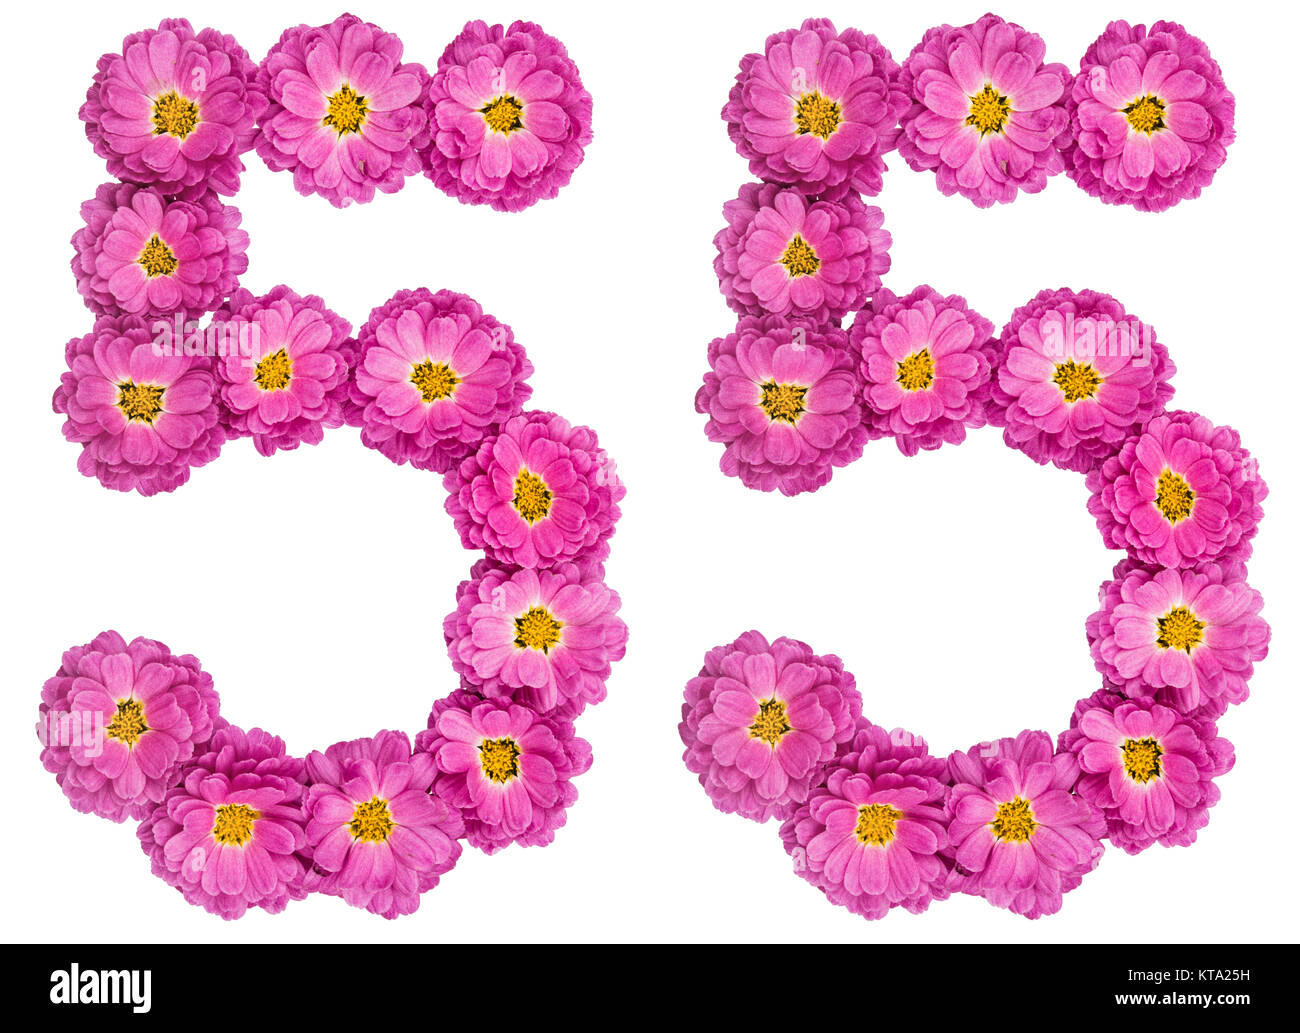 Arabic numeral 55, fifty five, from flowers of chrysanthemum, isolated on  white background 96943360a8